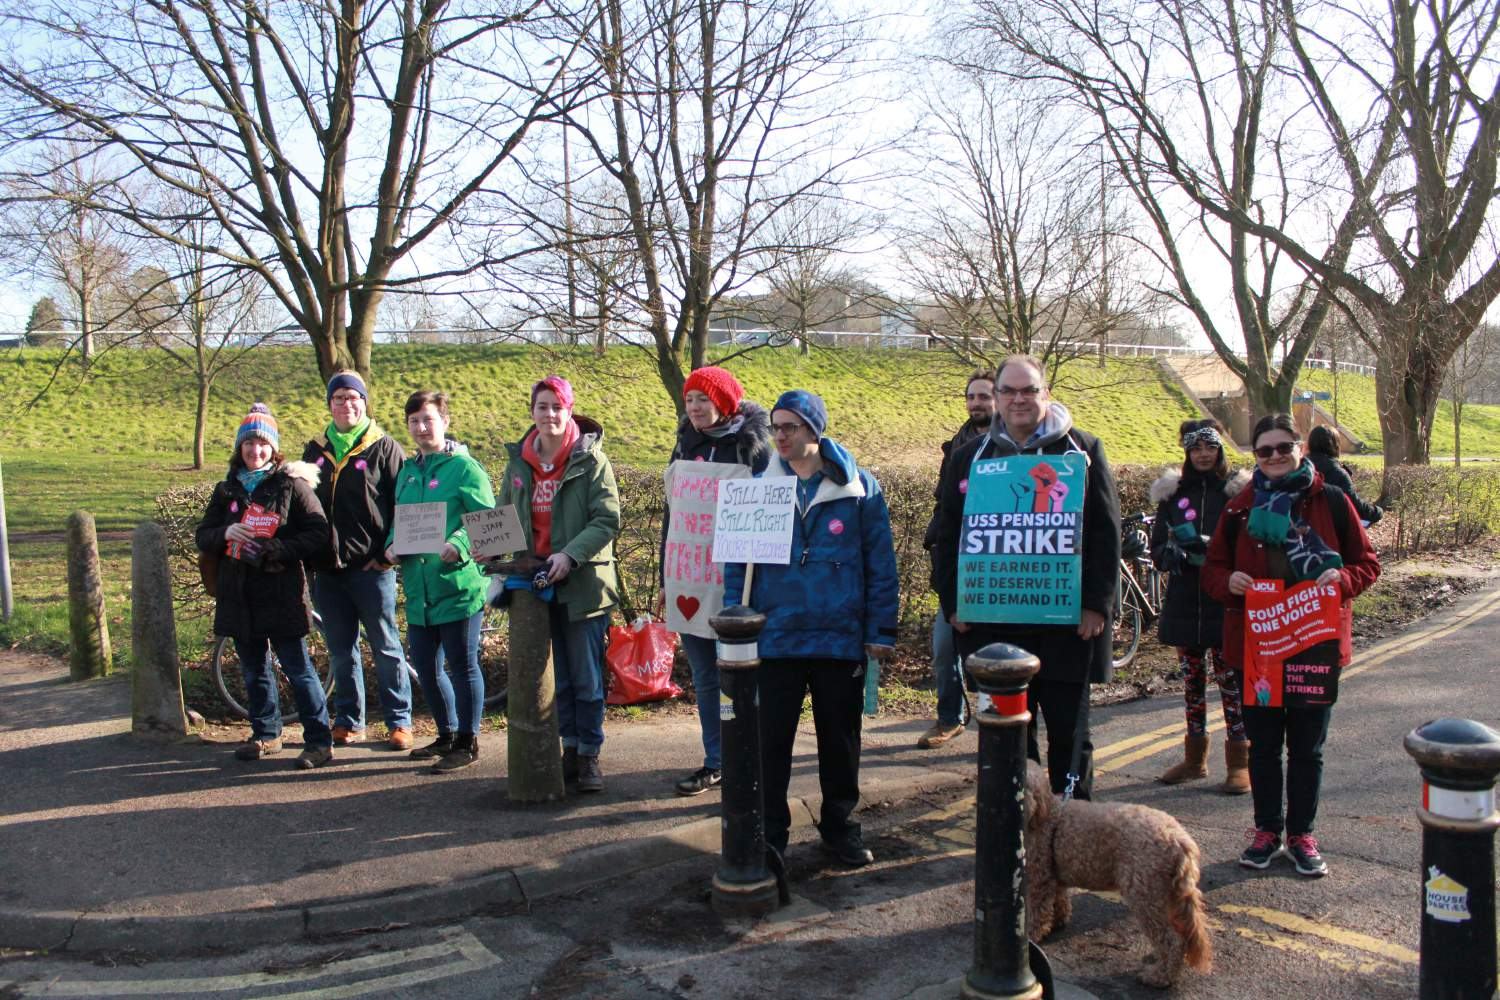 The voices of staff and students rallying on campus picket lines